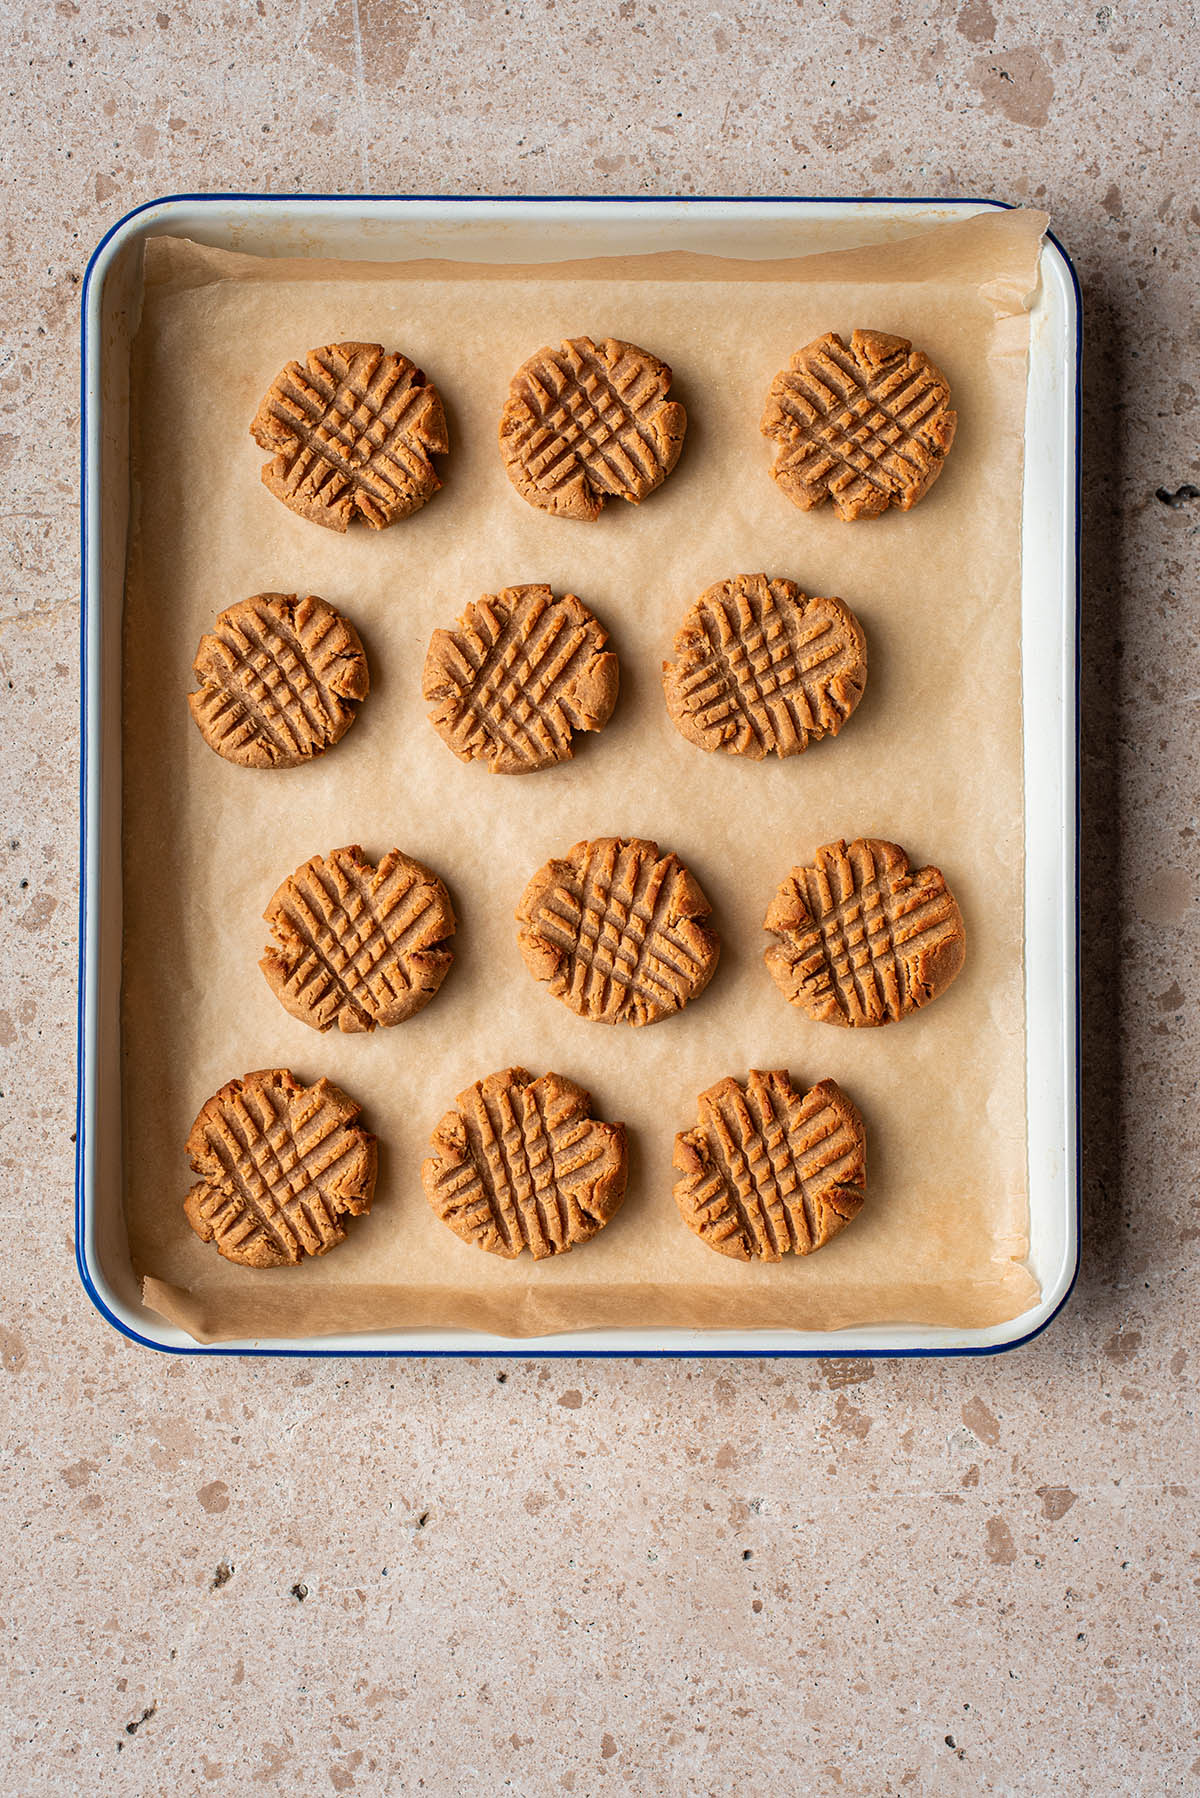 Baked cross-hatch gluten free peanut butter cookies on a tray, top down view.